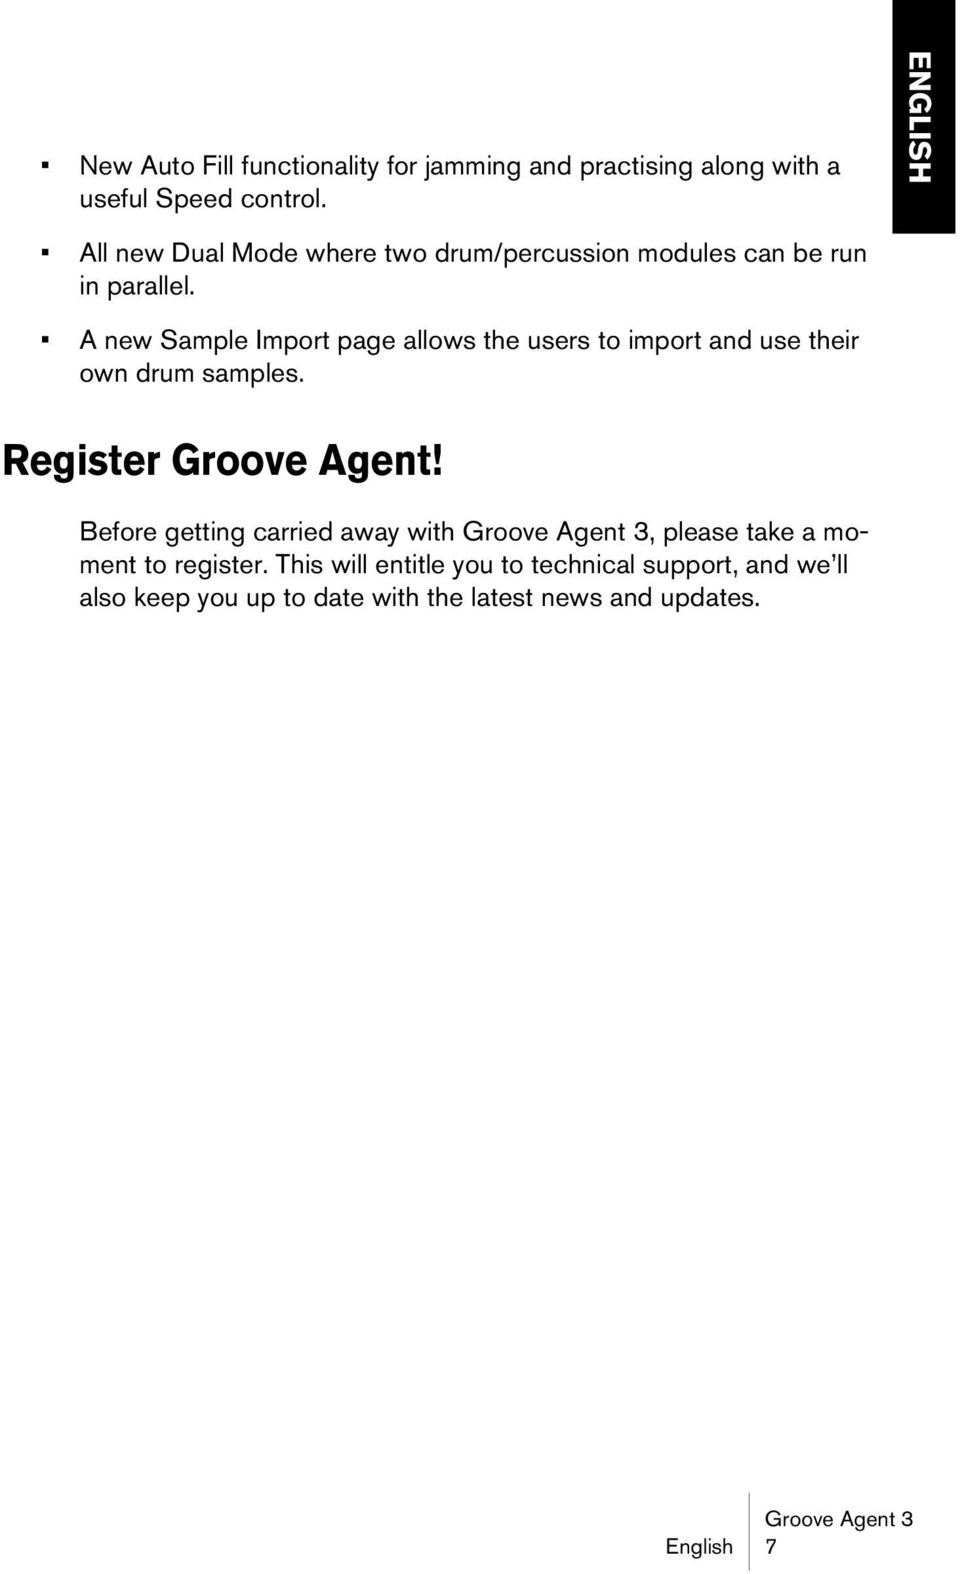 A new Sample Import page allows the users to import and use their own drum samples. Register Groove Agent!